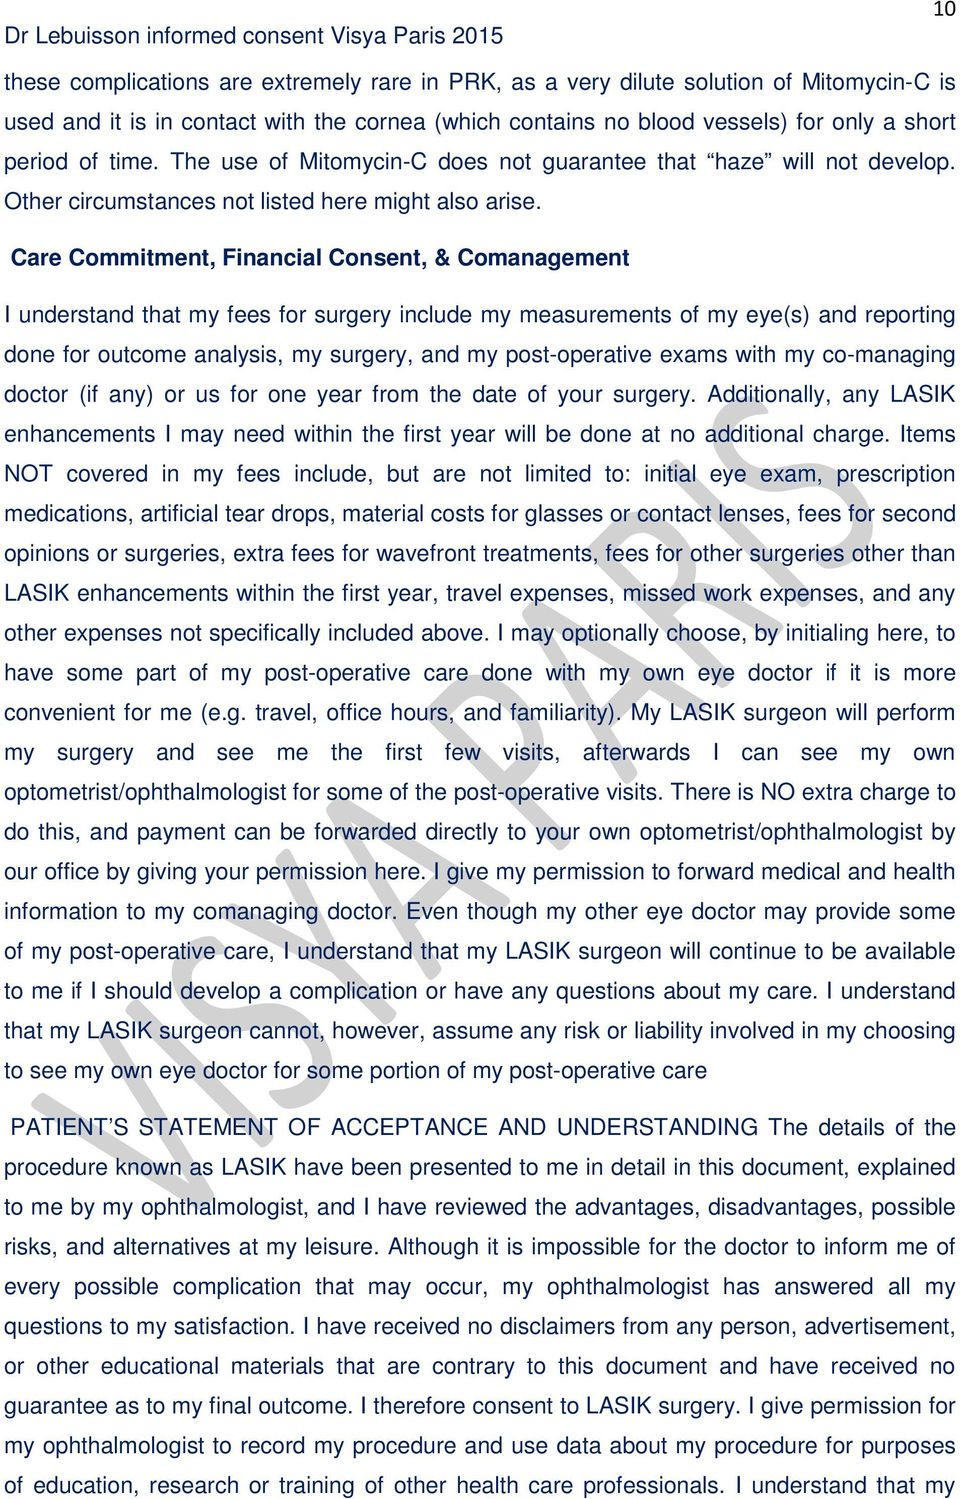 Care Commitment, Financial Consent, & Comanagement I understand that my fees for surgery include my measurements of my eye(s) and reporting done for outcome analysis, my surgery, and my